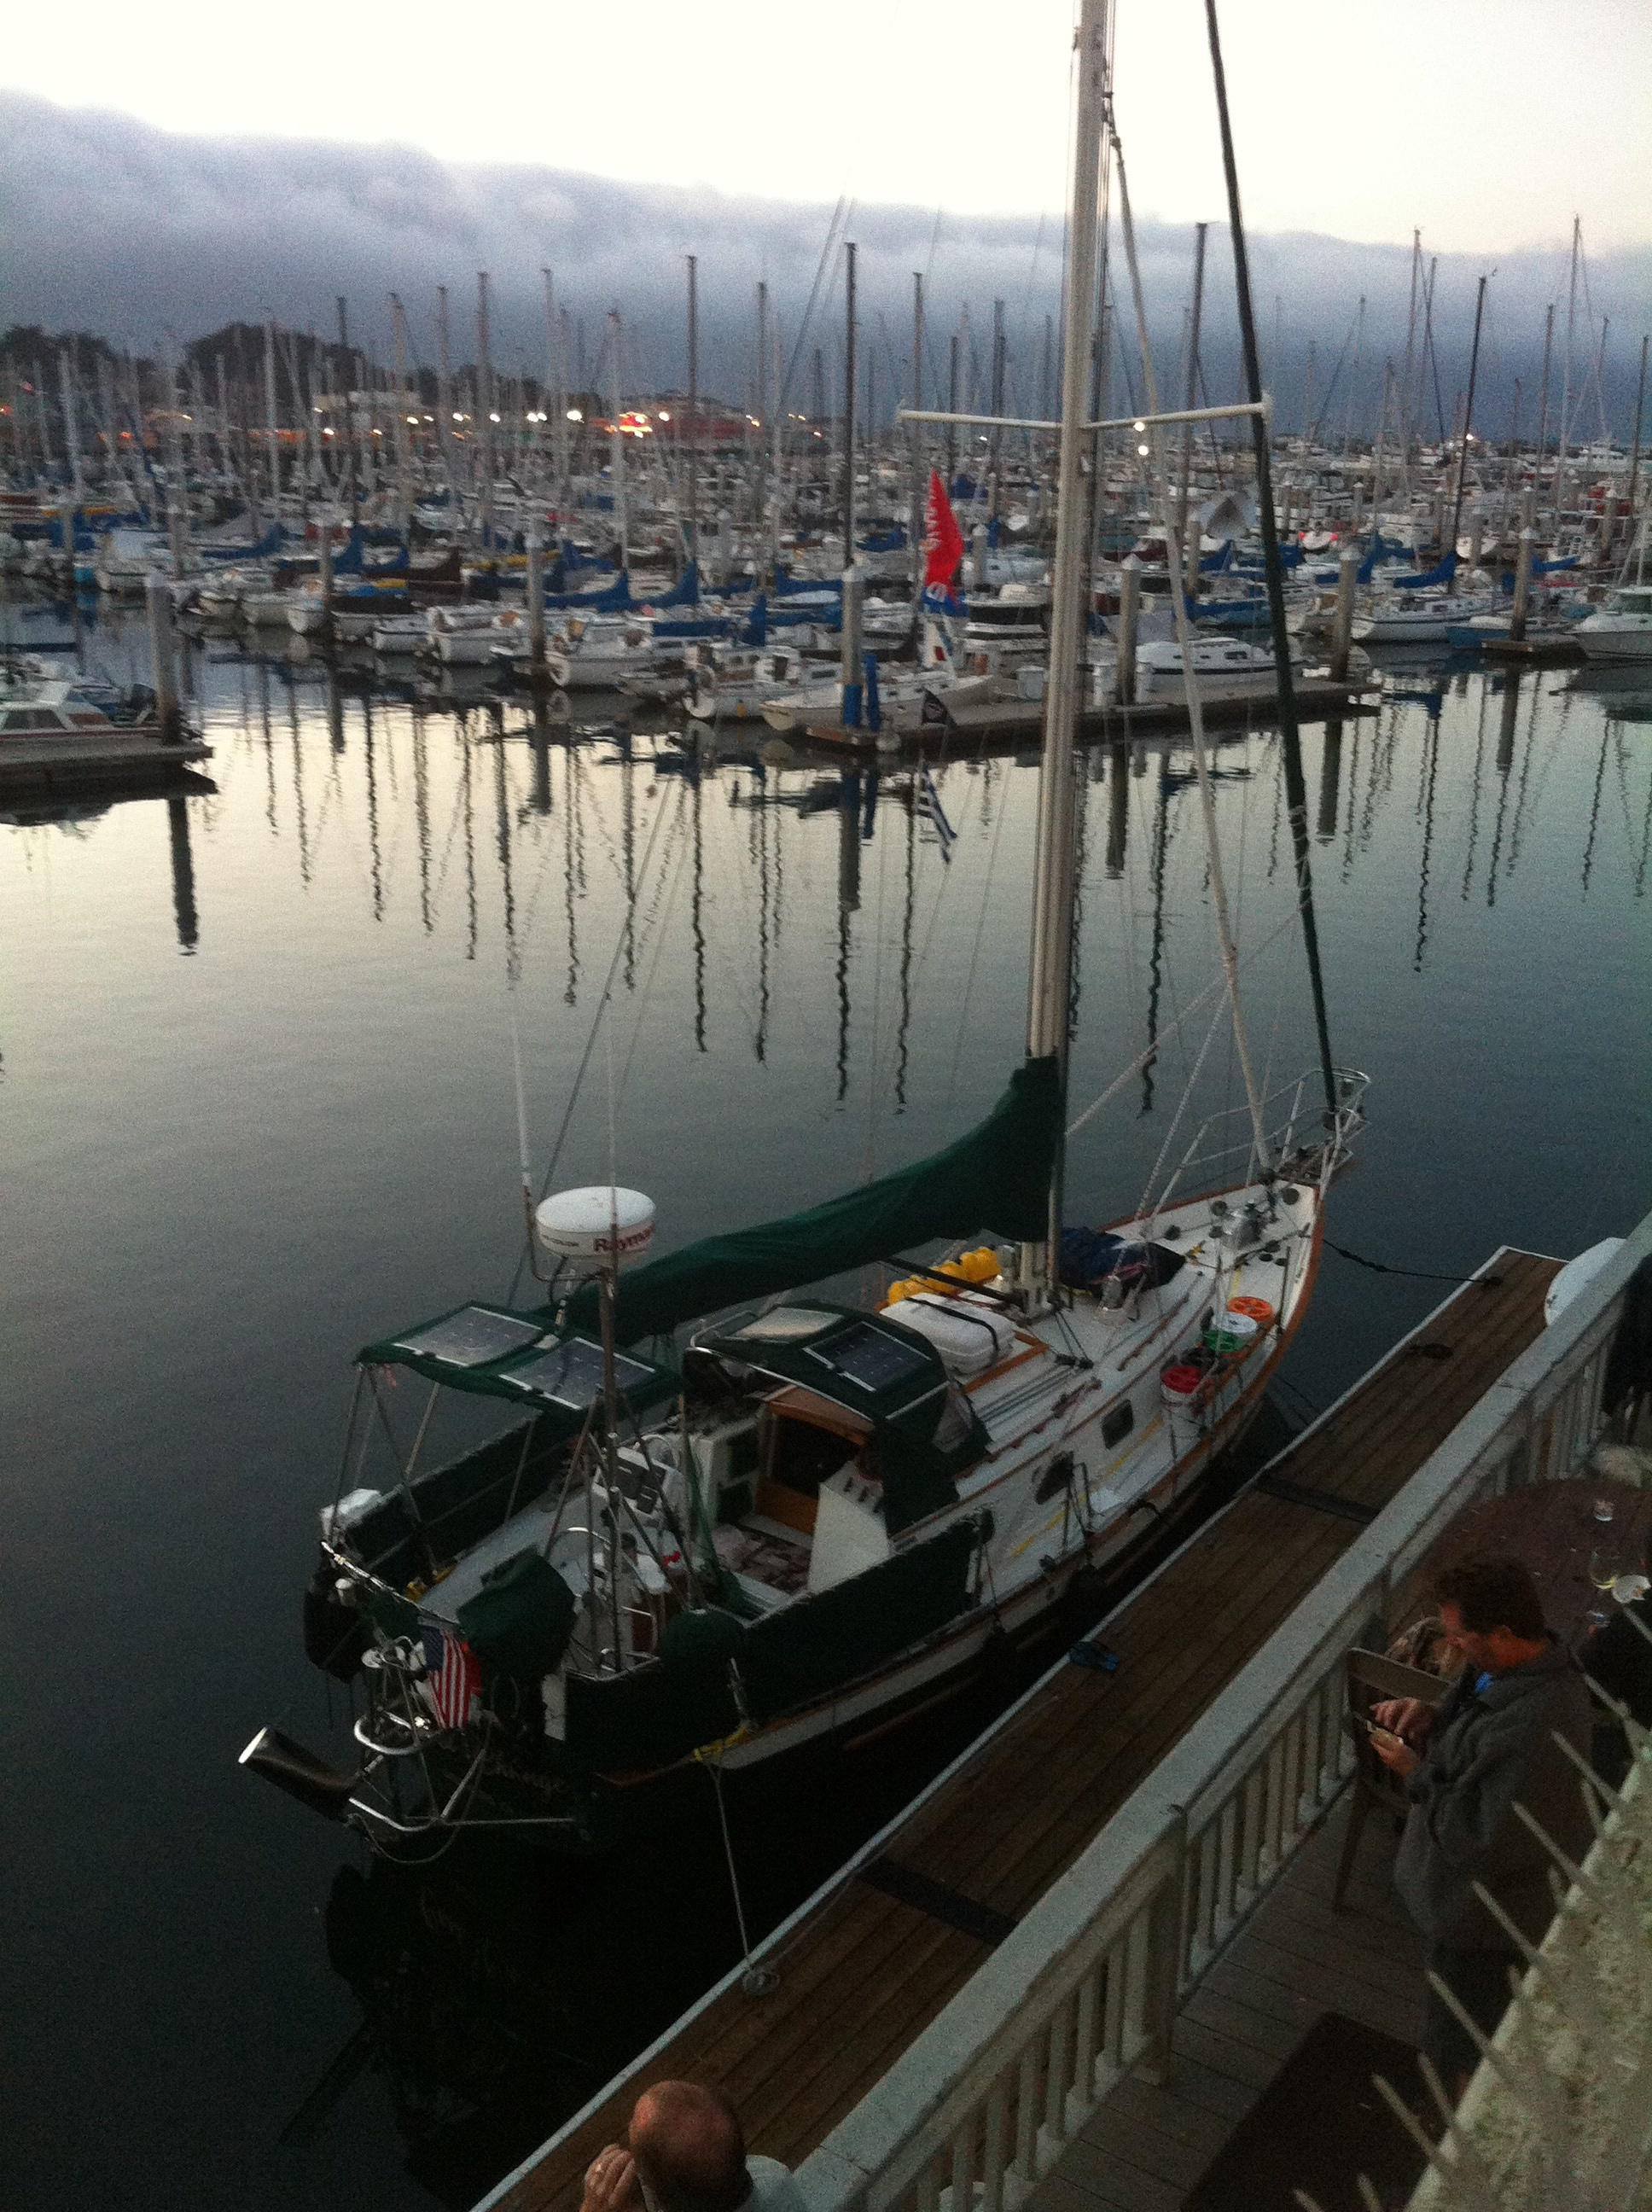 Cool Change looking hot at the Monterey Yacht Club/Monterey Harbor. Lots of club members asked tons of questions about our beauty. Rick was like a proud father, showing her off.